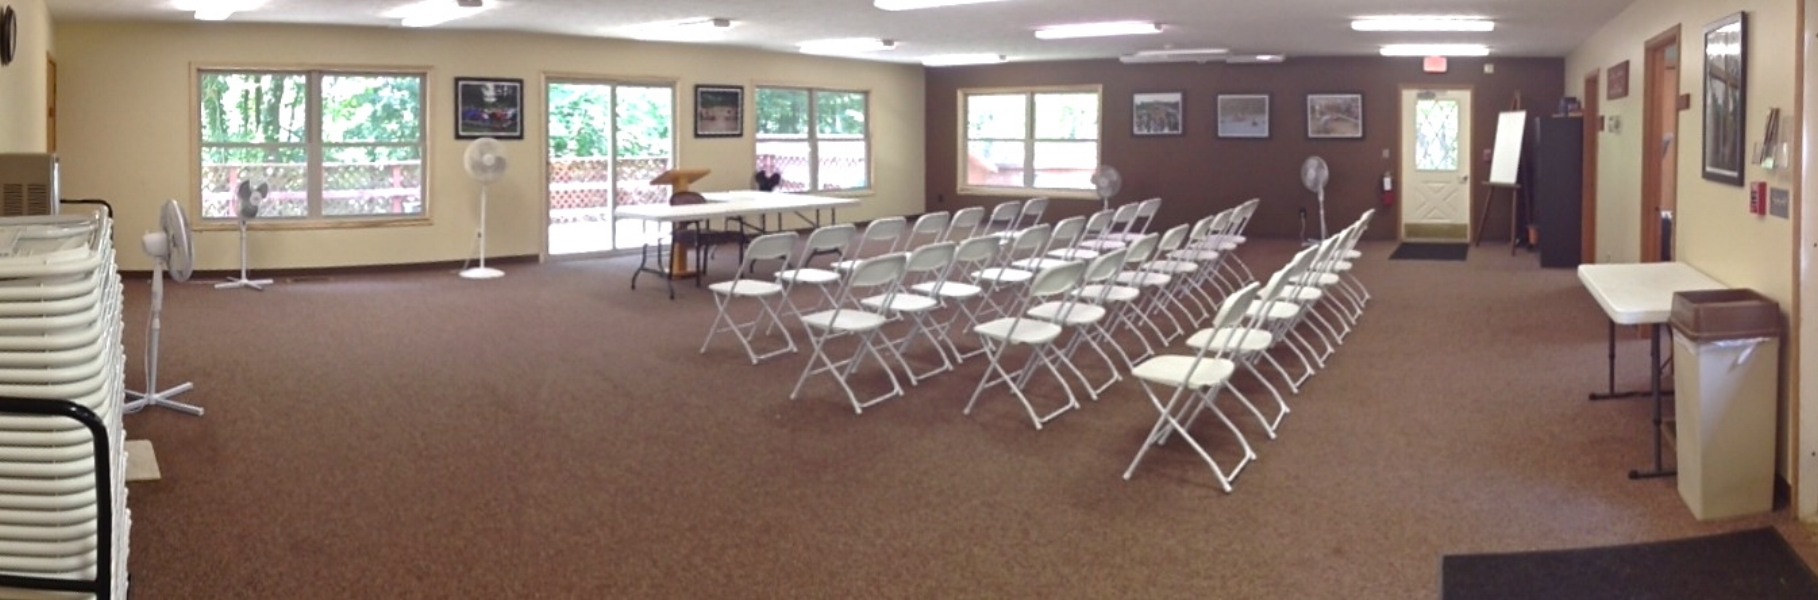 Here's a look at how one of our groups had the room arranged. We can set it up however you desire, with up to 100 chair and 10 tables available.